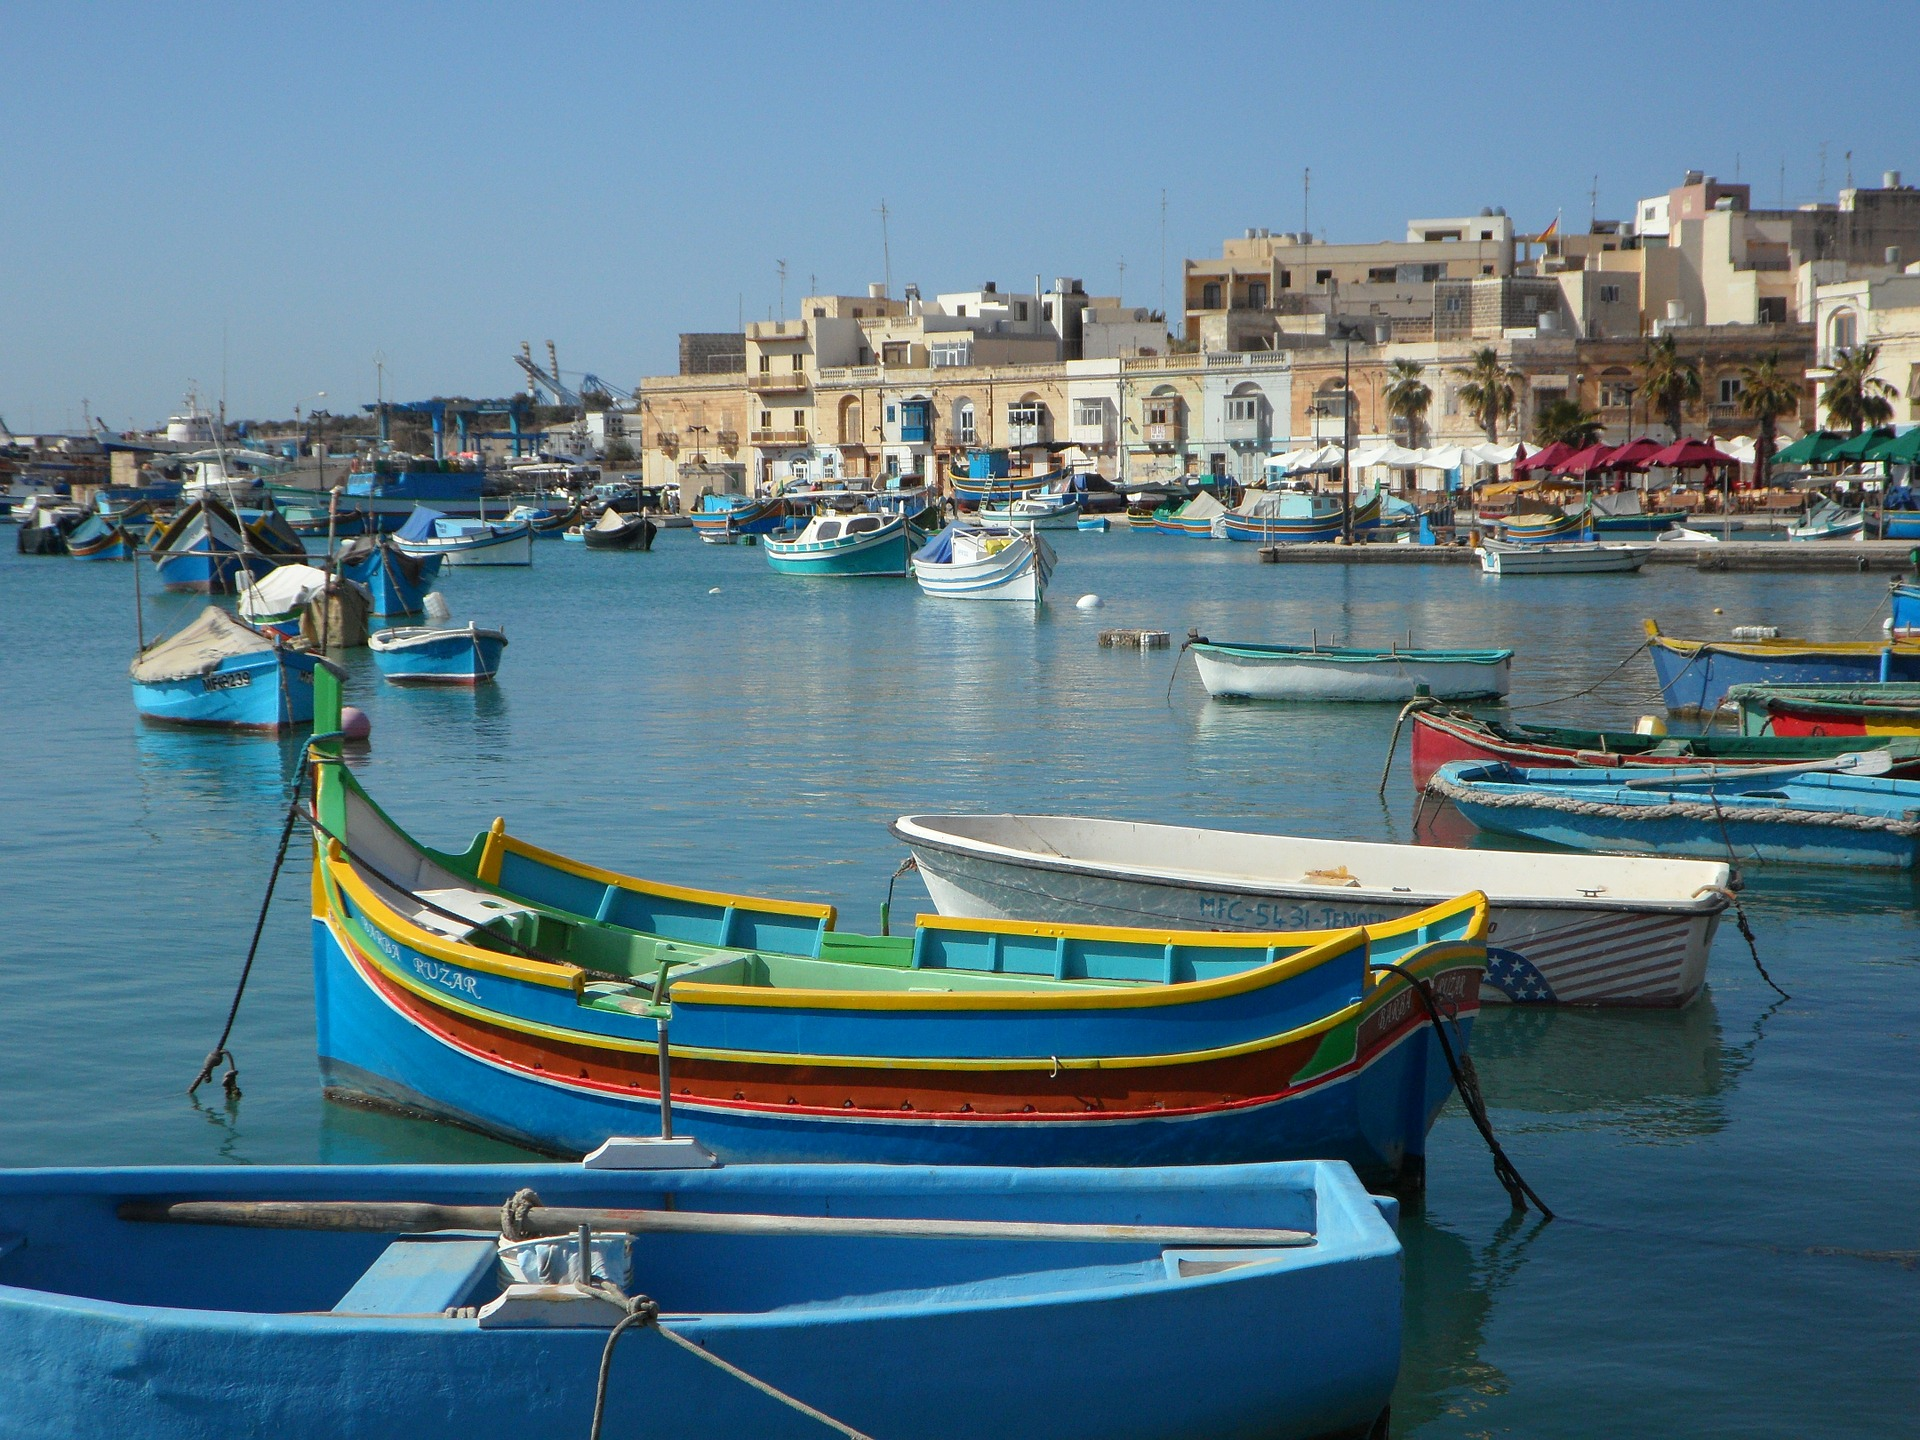 Cheap flights to Luqa